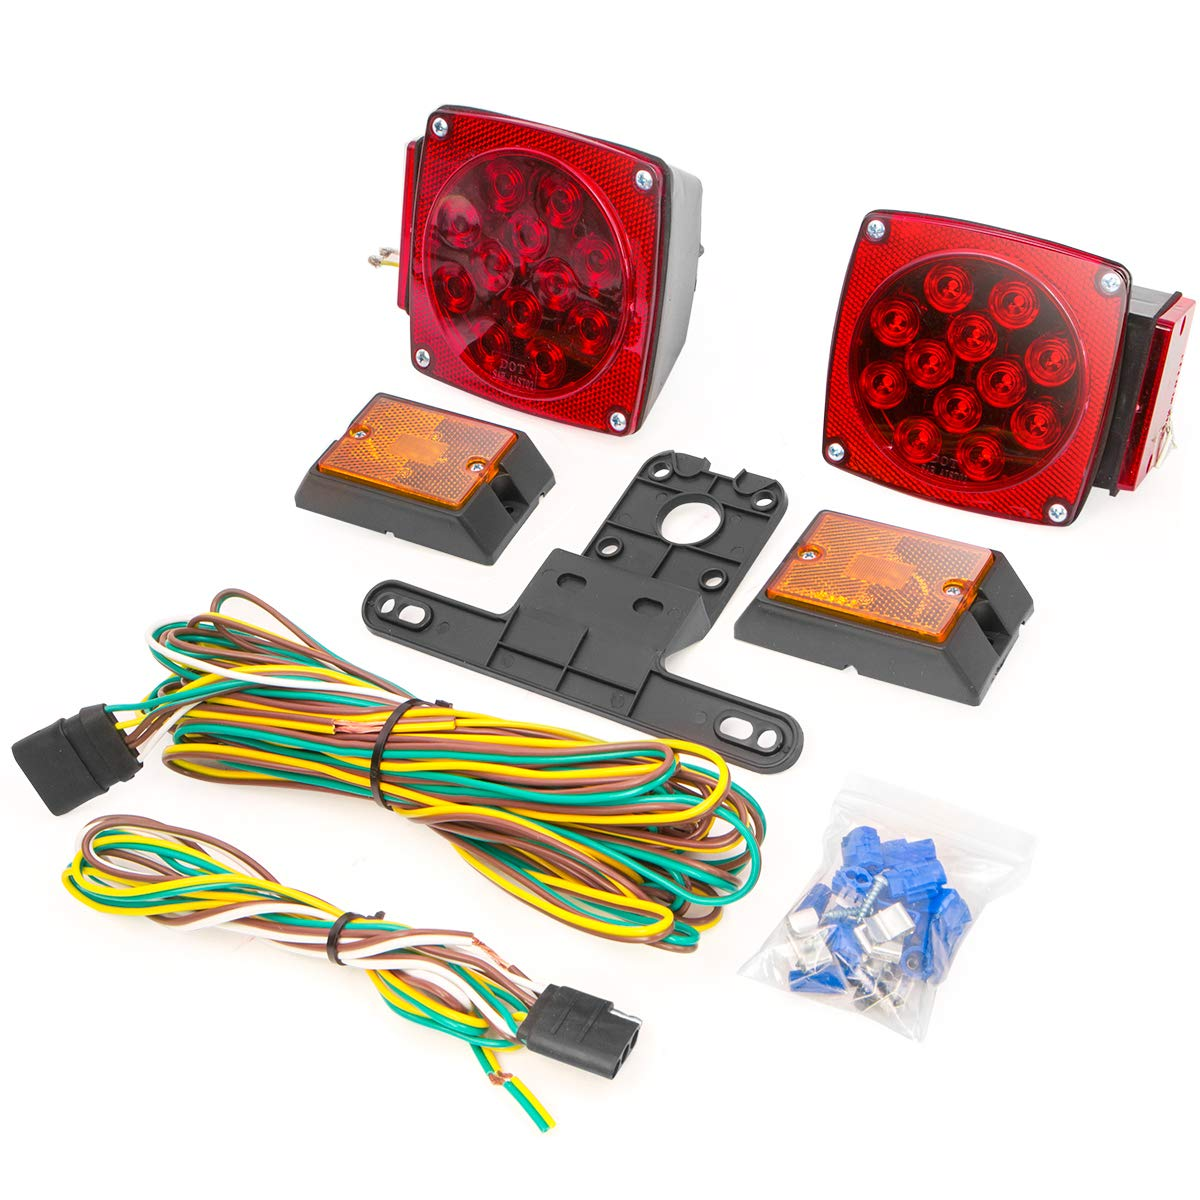 XtremepowerUS 12 Volt LED Universal Mount Combination Trailer Tail Lights Kit by XtremepowerUS